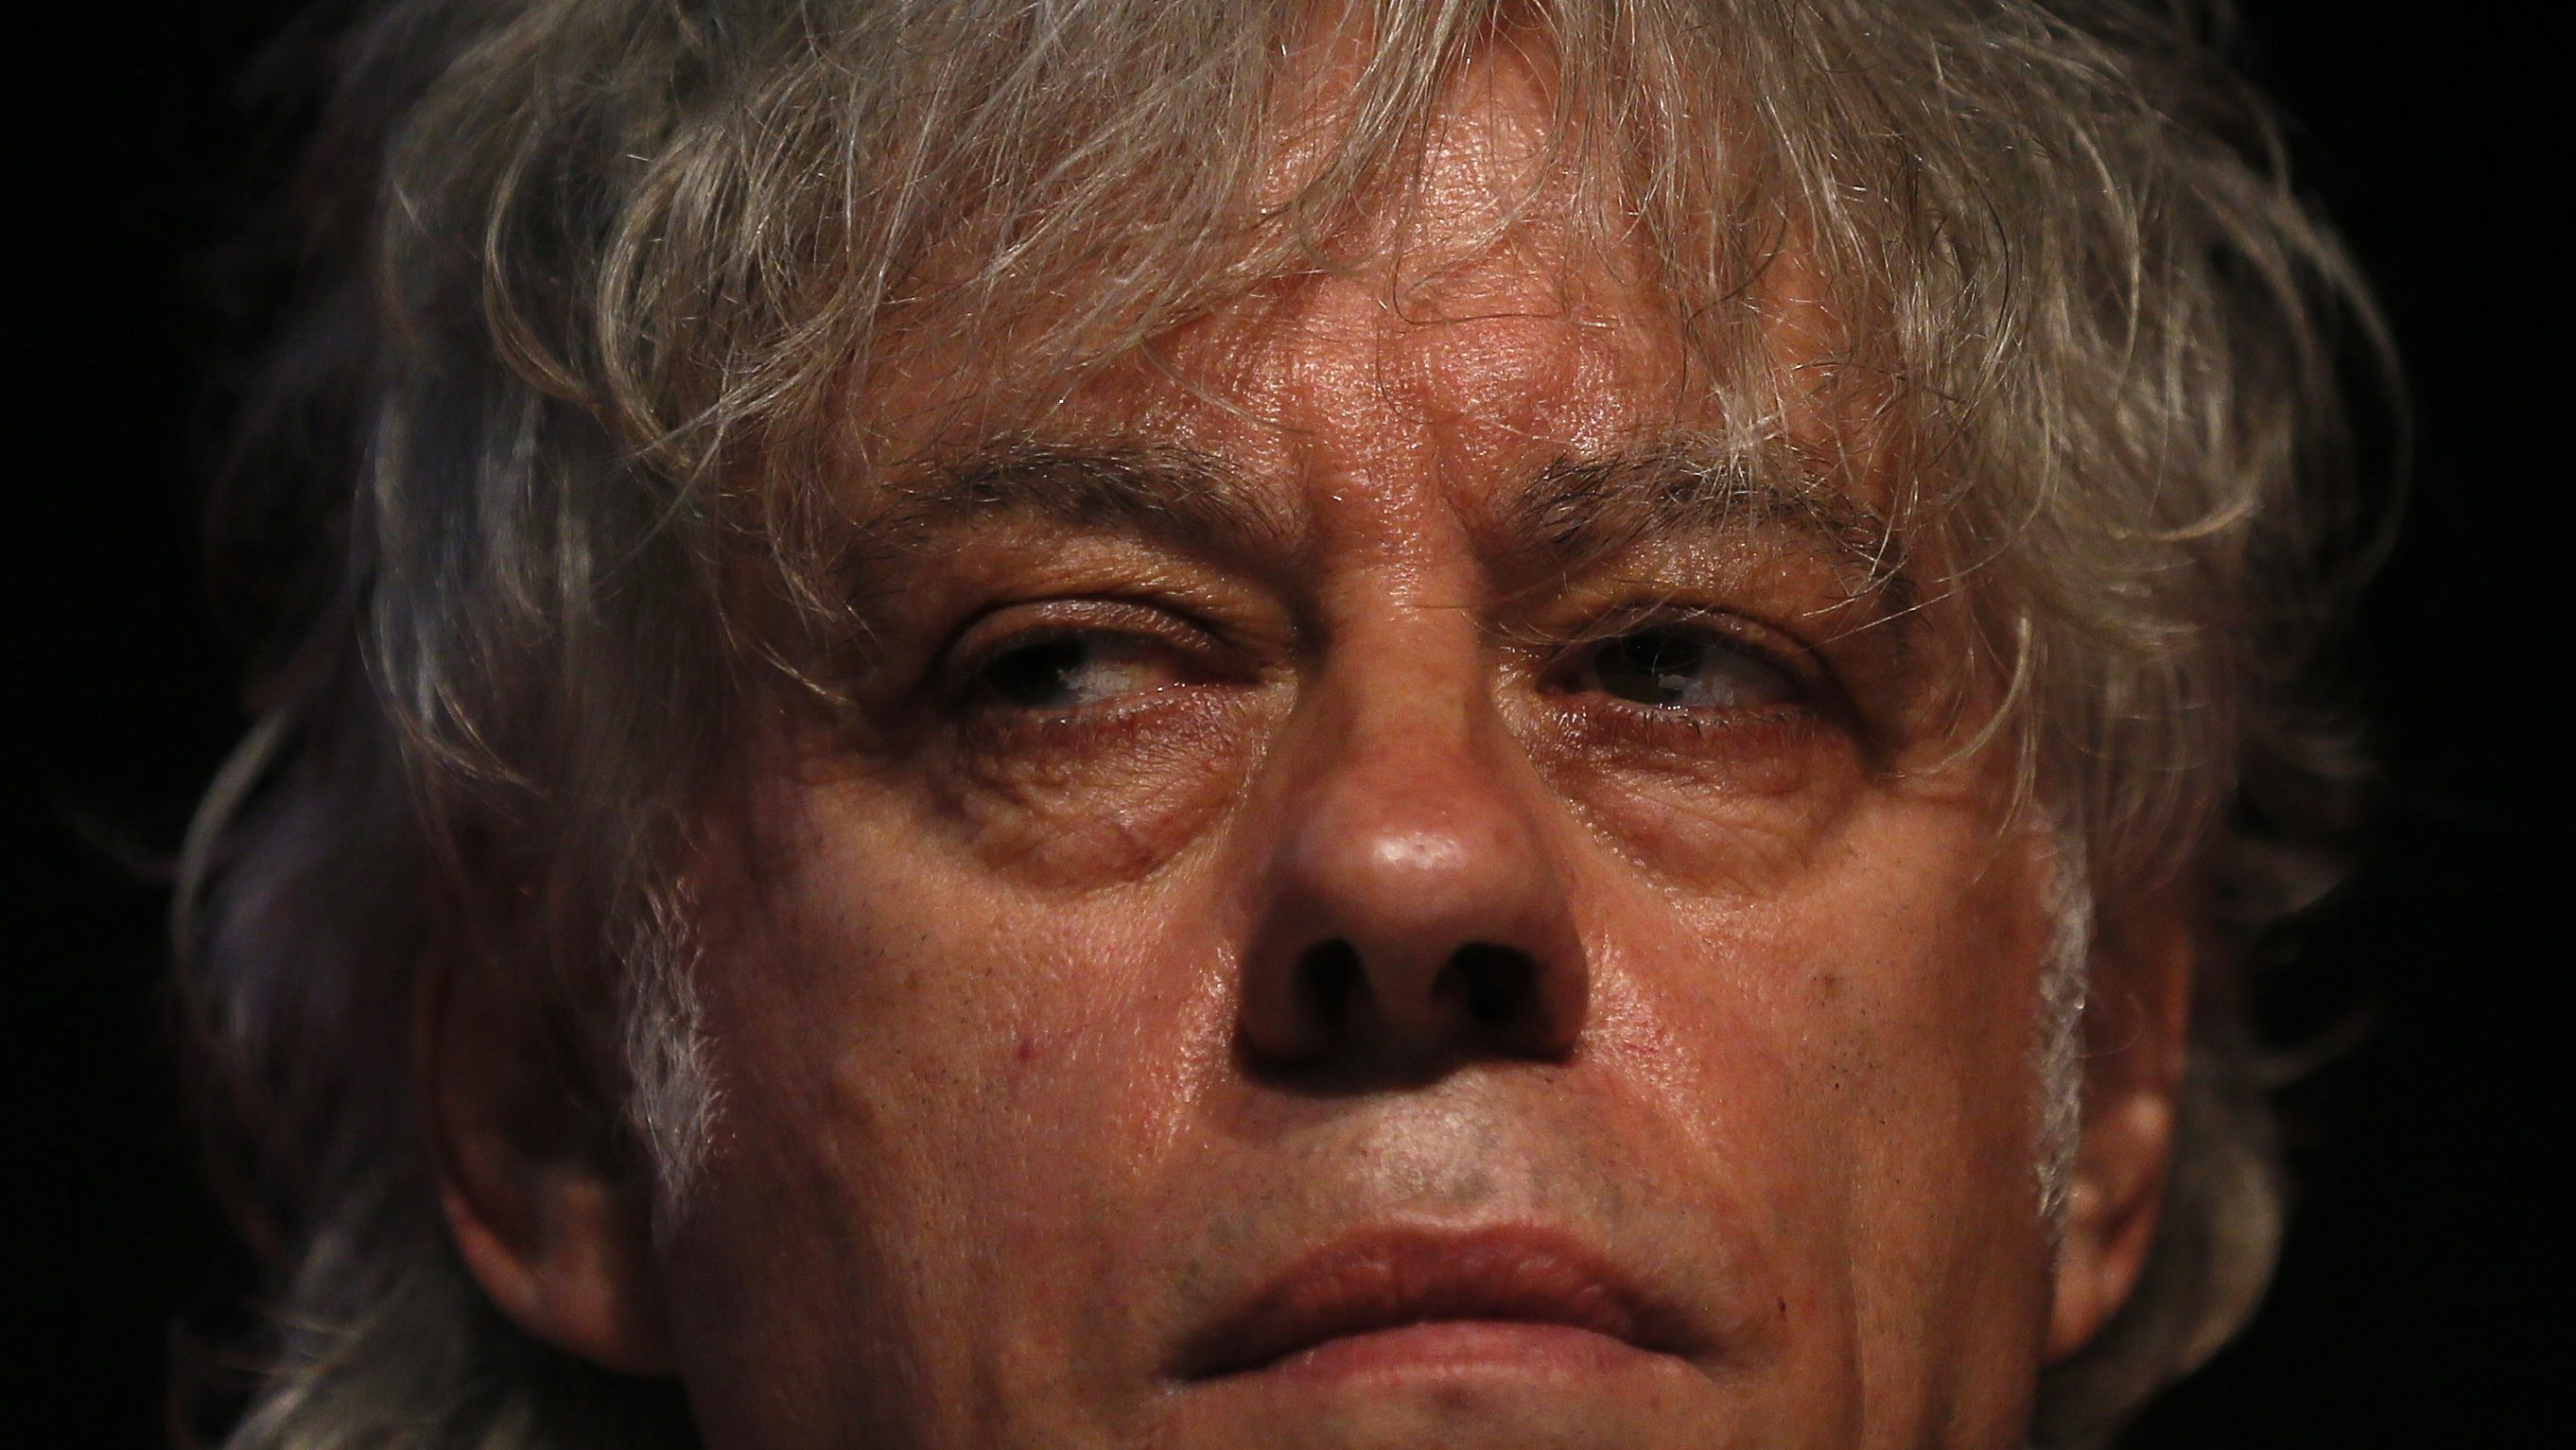 Bob Geldof's African fund, 8 Miles, used Mauritius to avoid taxes